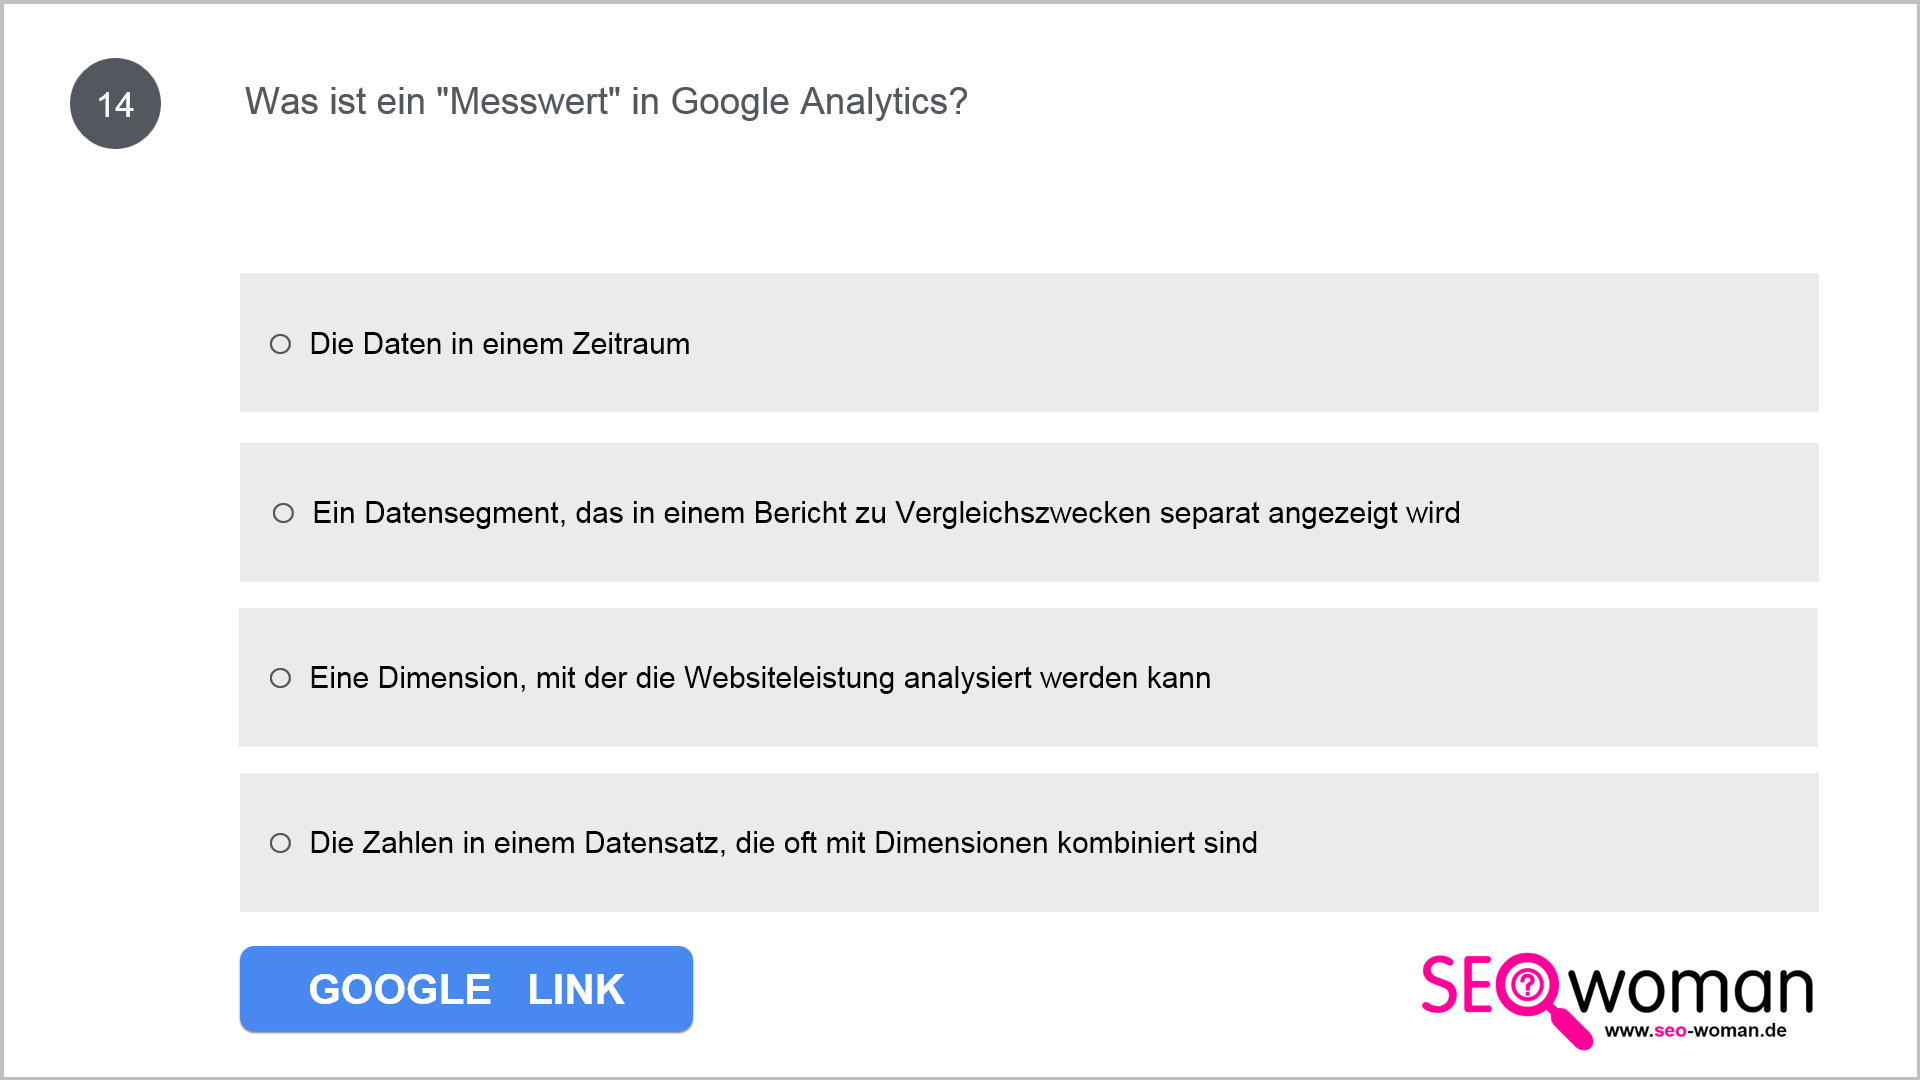 Was ist ein Messwert in Google Analytics?